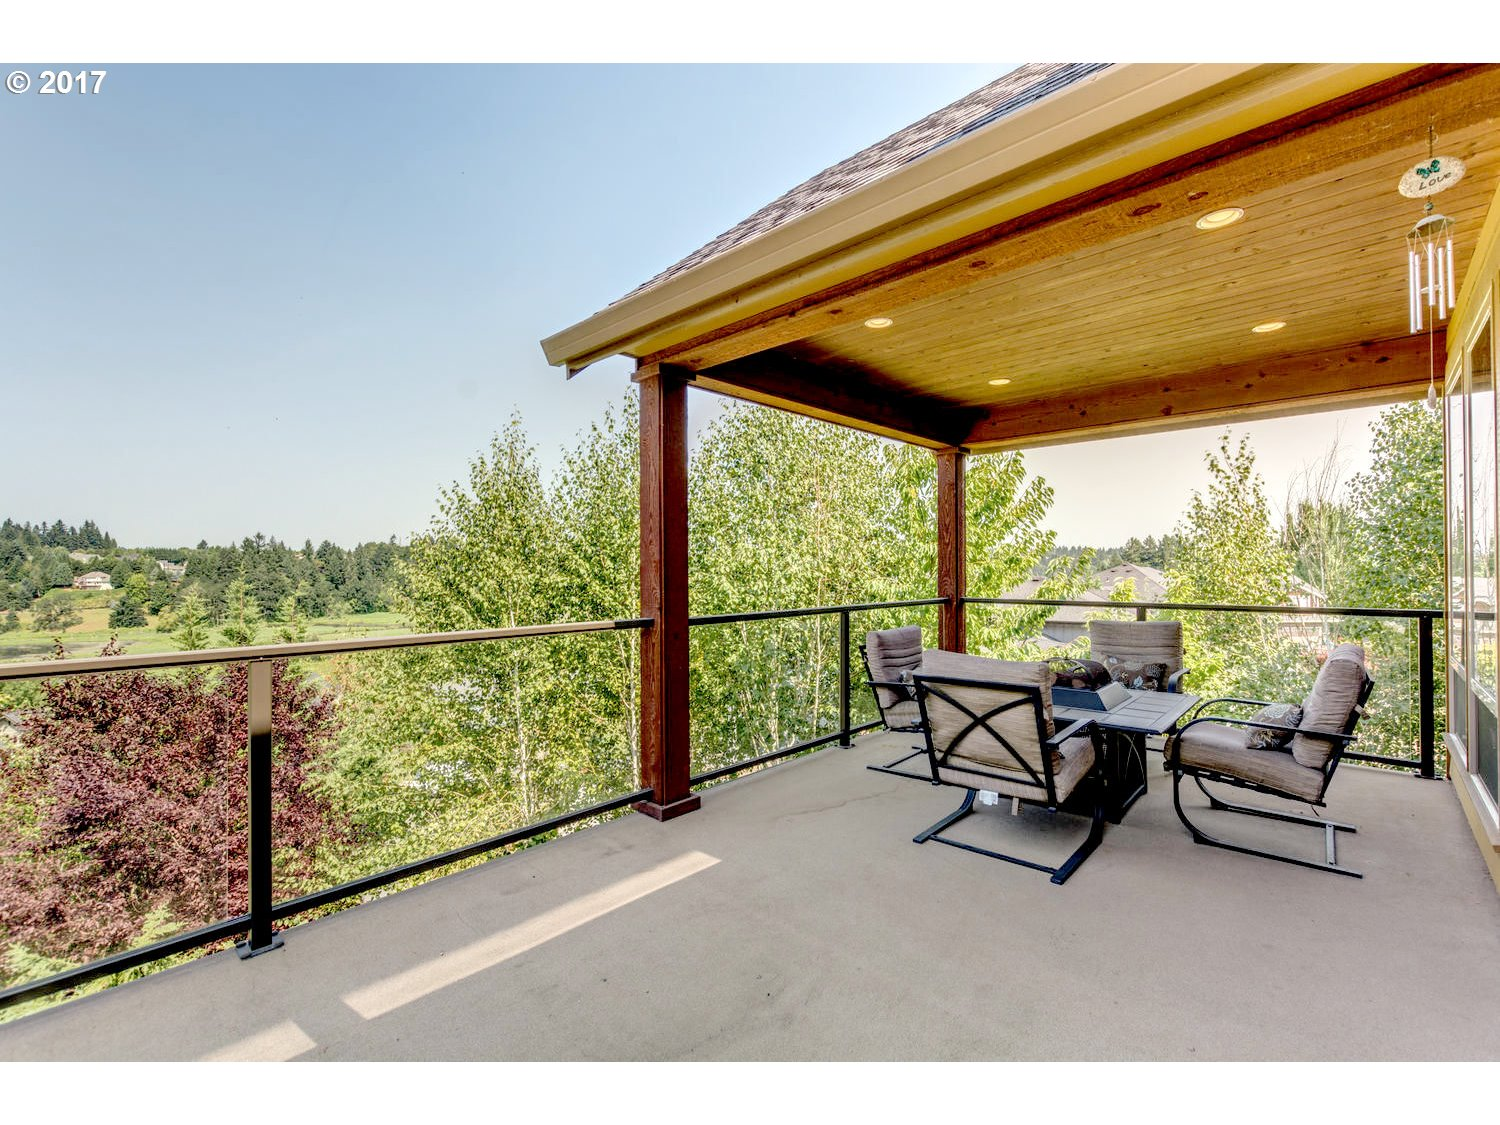 13215 NW 33RD AVE Vancouver, WA 98685 - MLS #: 17605075